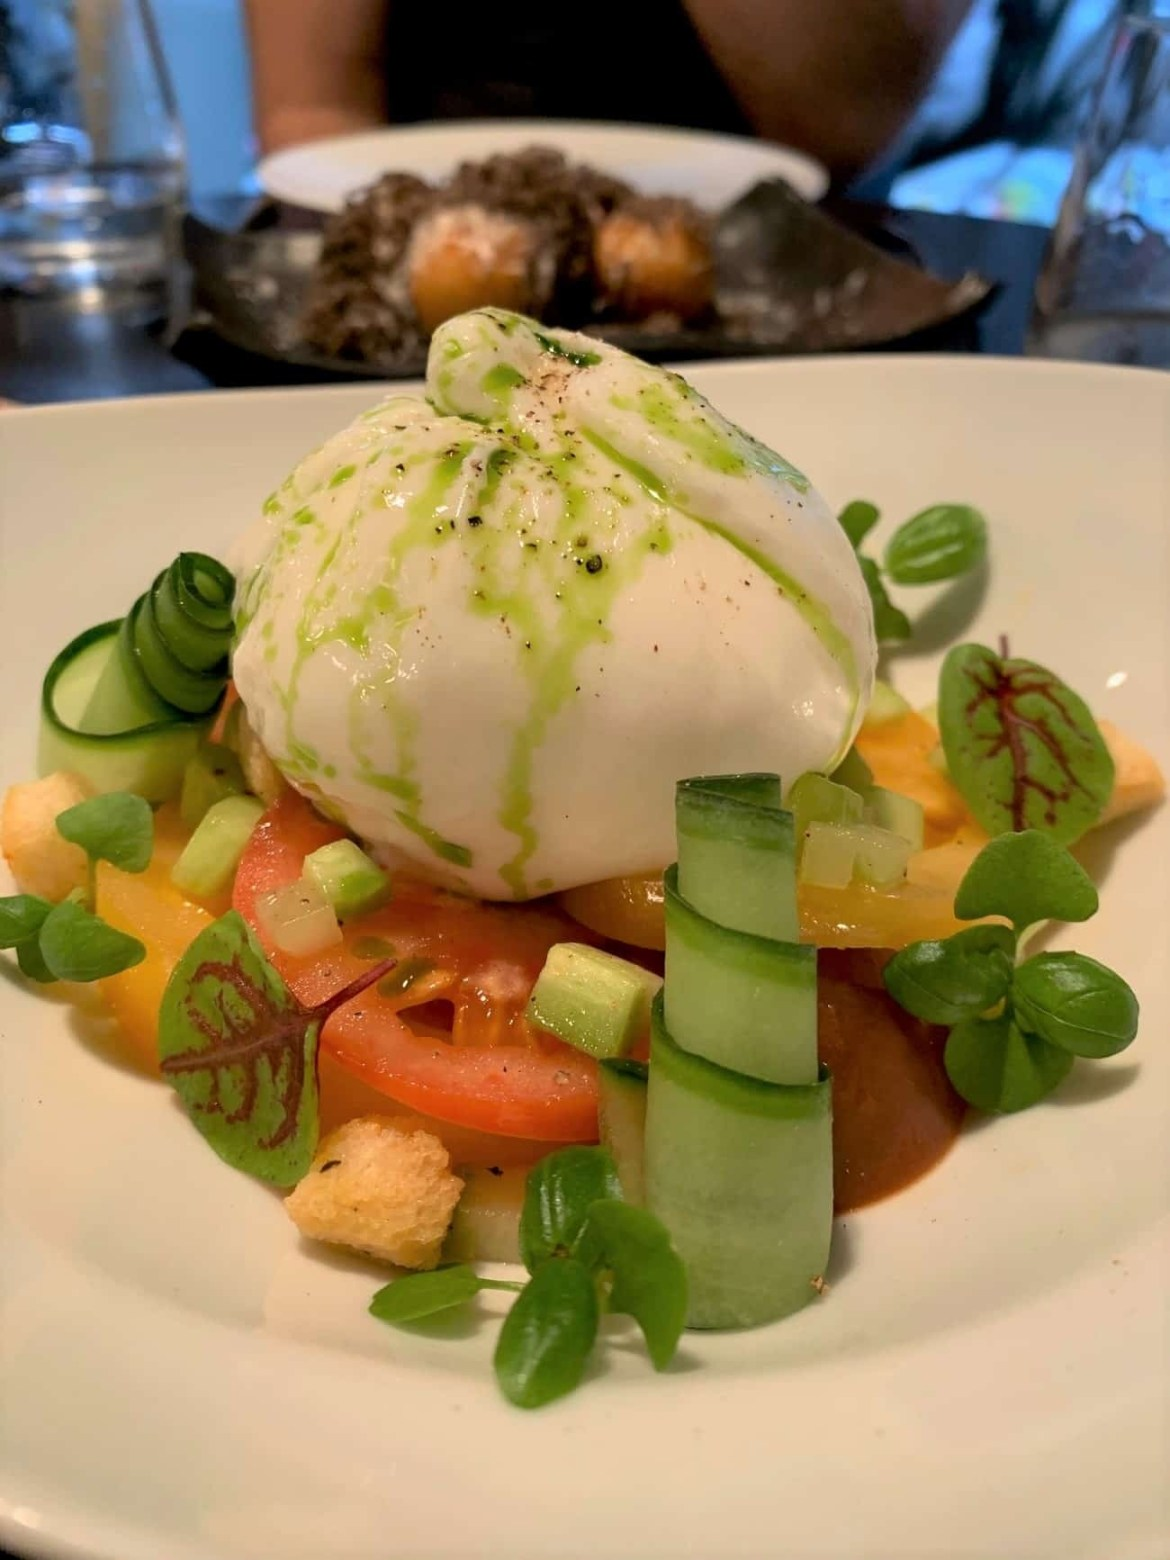 Burrata with tomatoes and cucumber